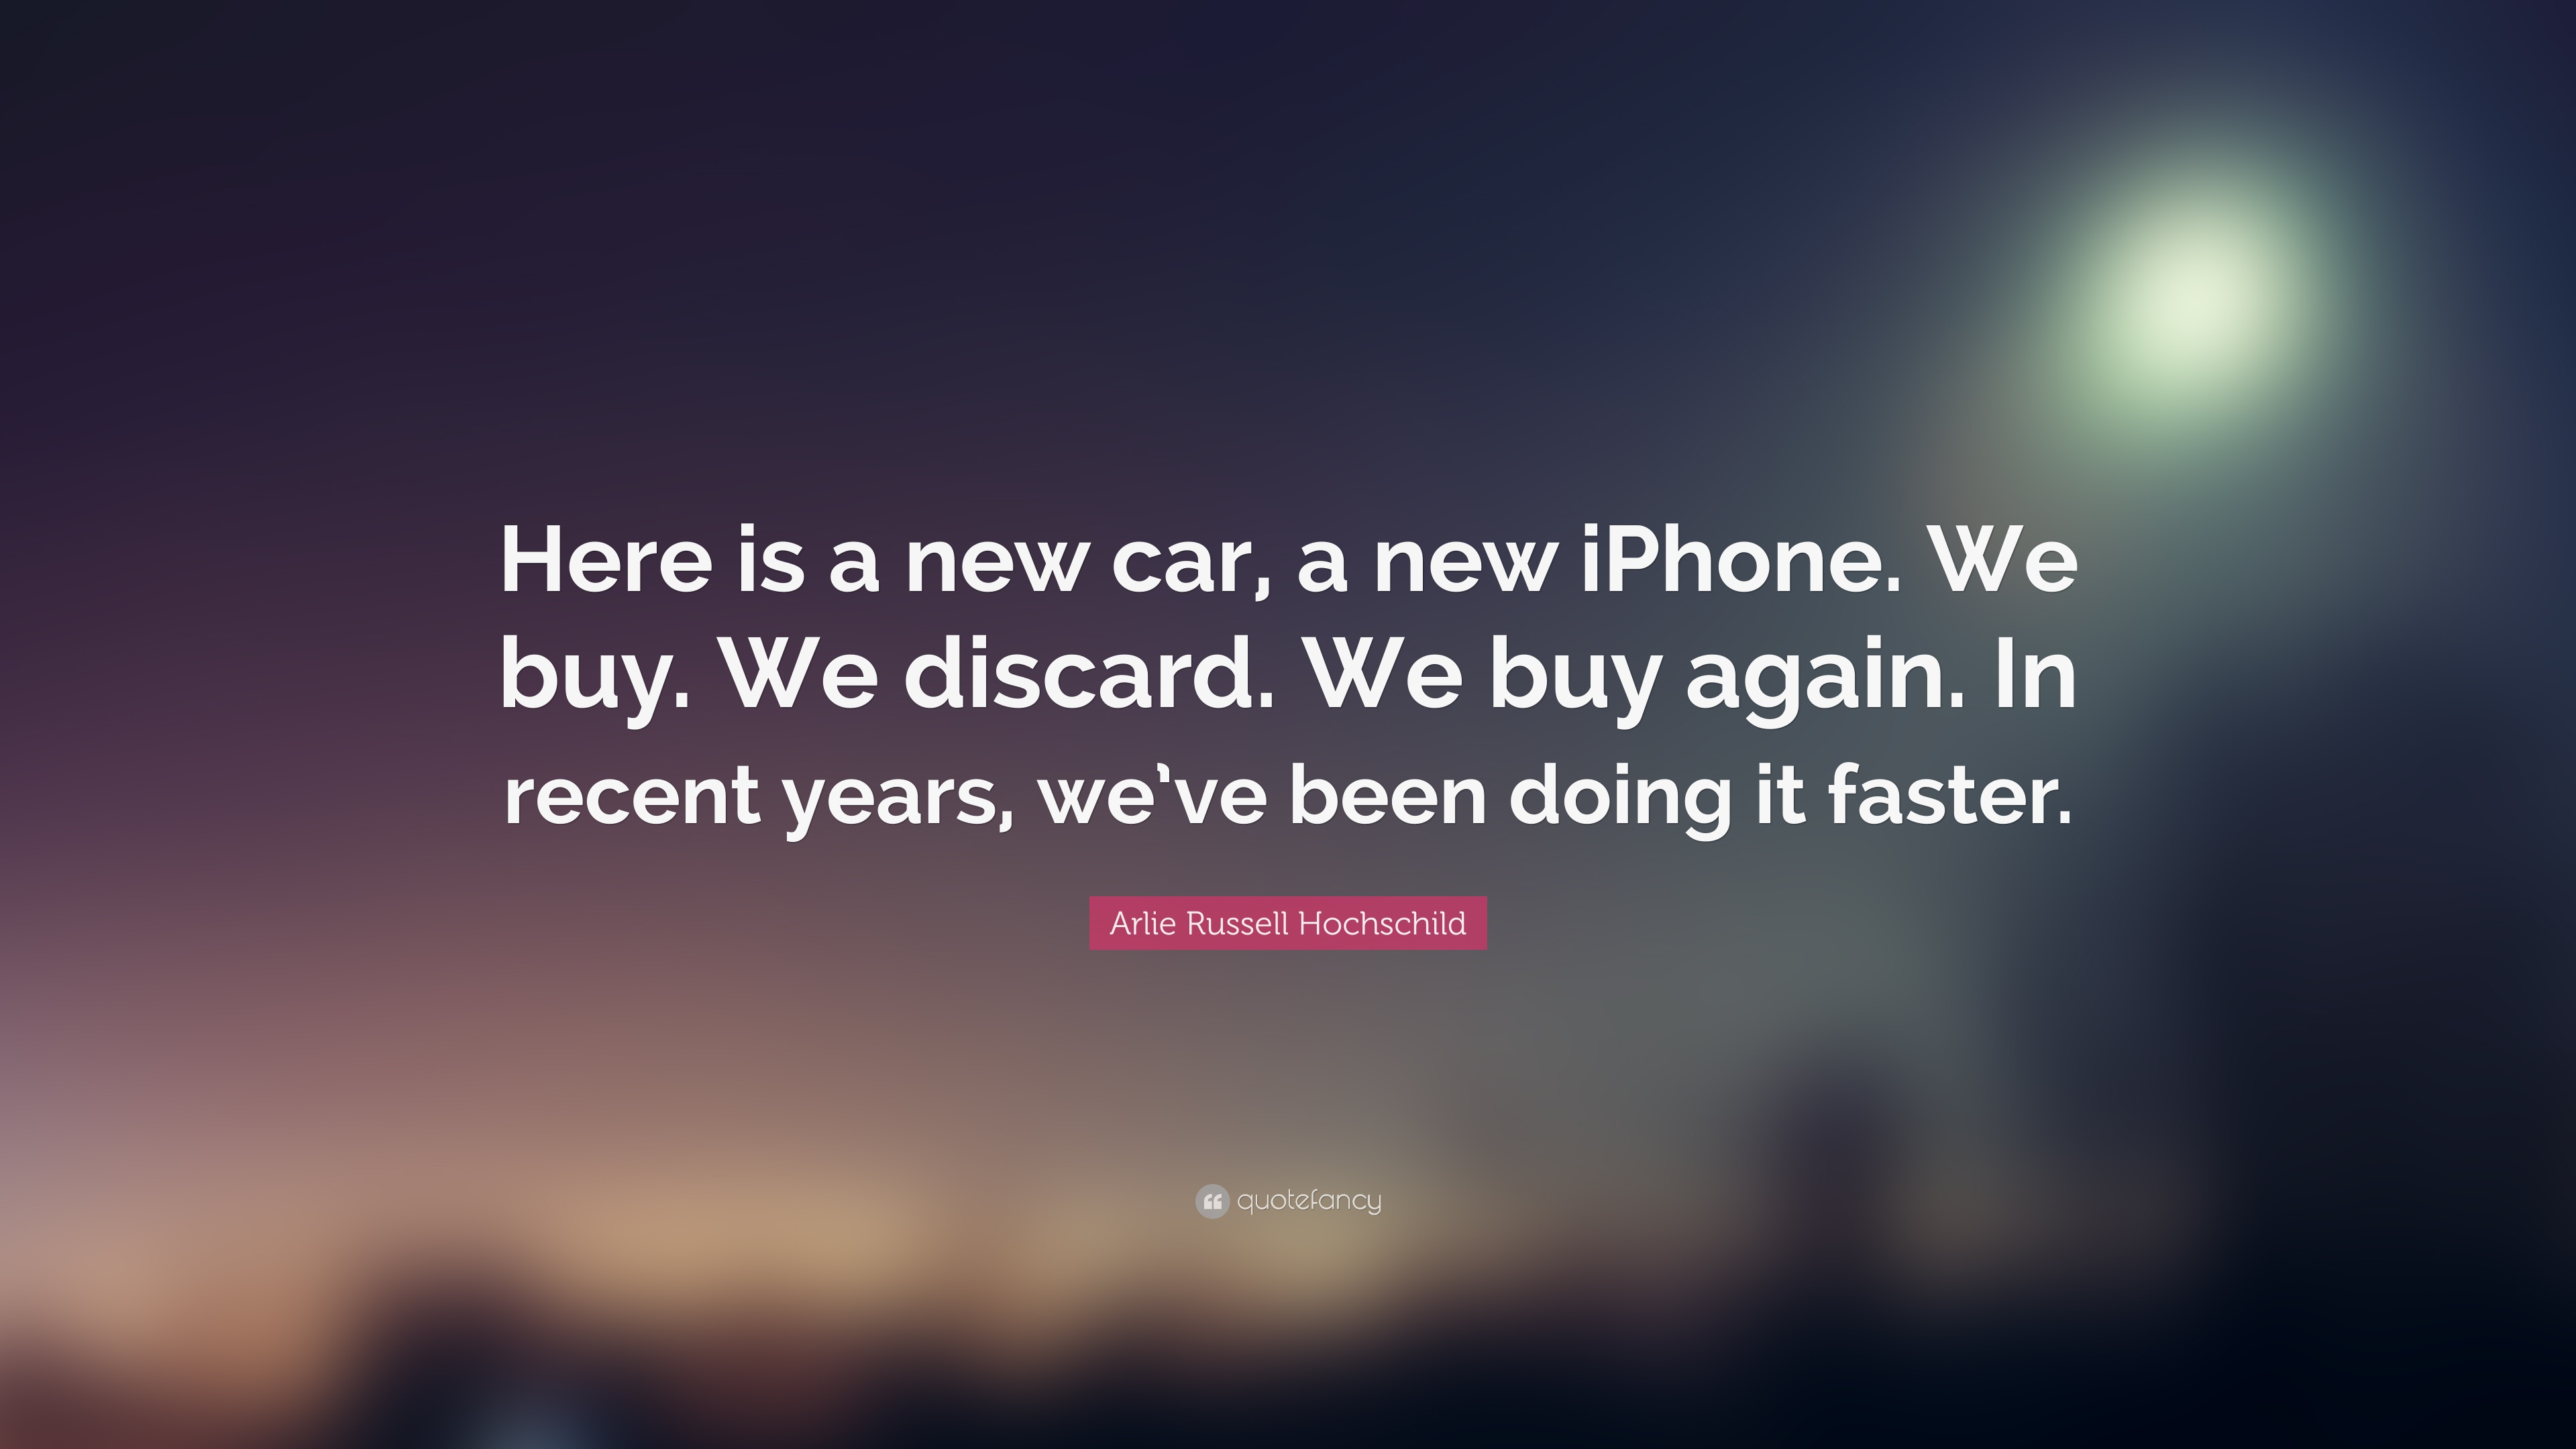 New Car Quotes >> Arlie Russell Hochschild Quote Here Is A New Car A New